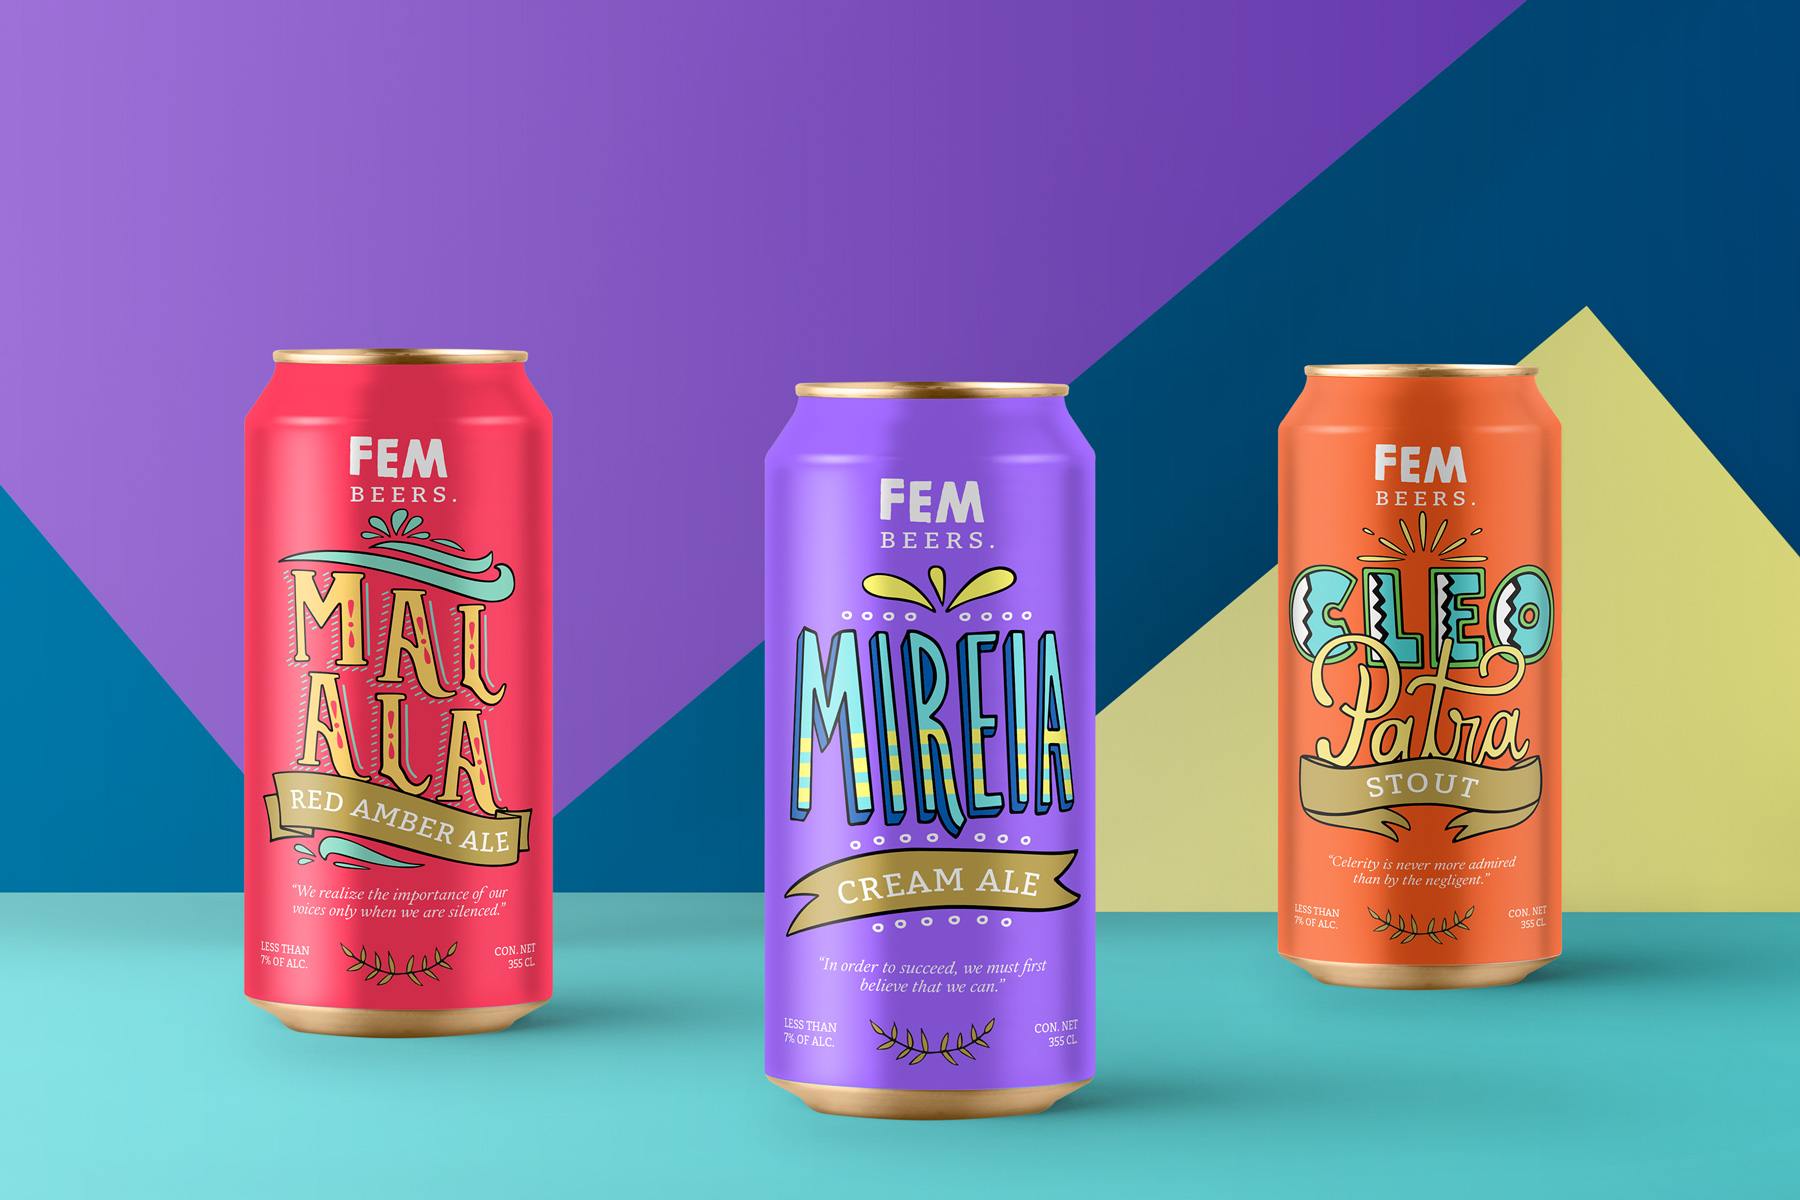 Branding and Packaging design cans for Fem brand